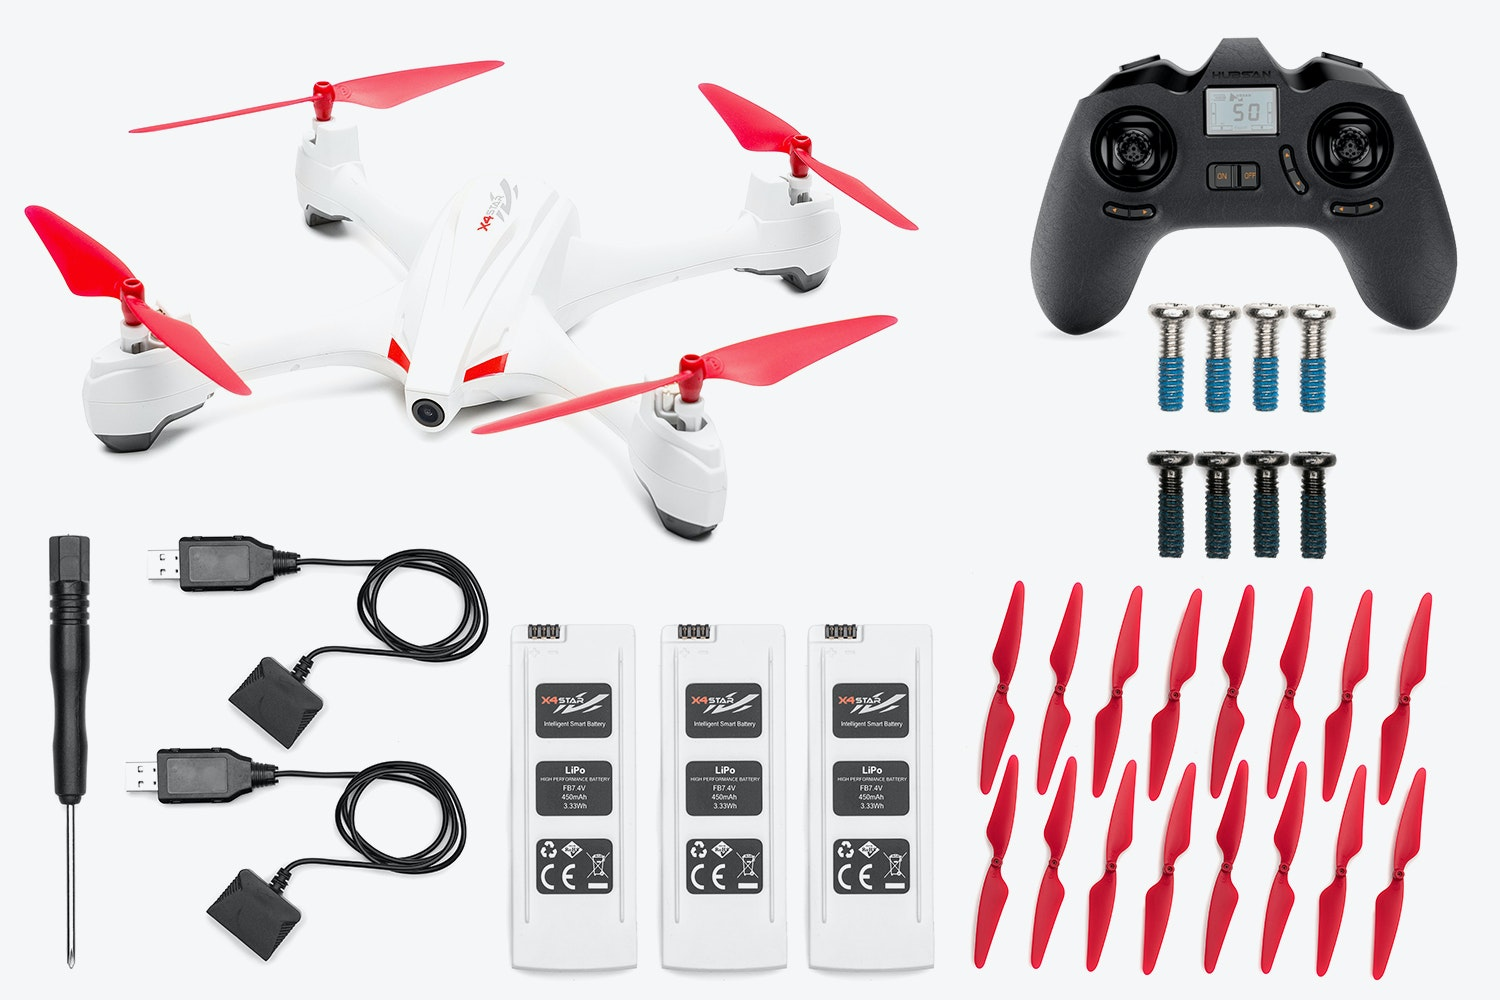 X4 Star H502C Extreme Bundle for (+ $20)